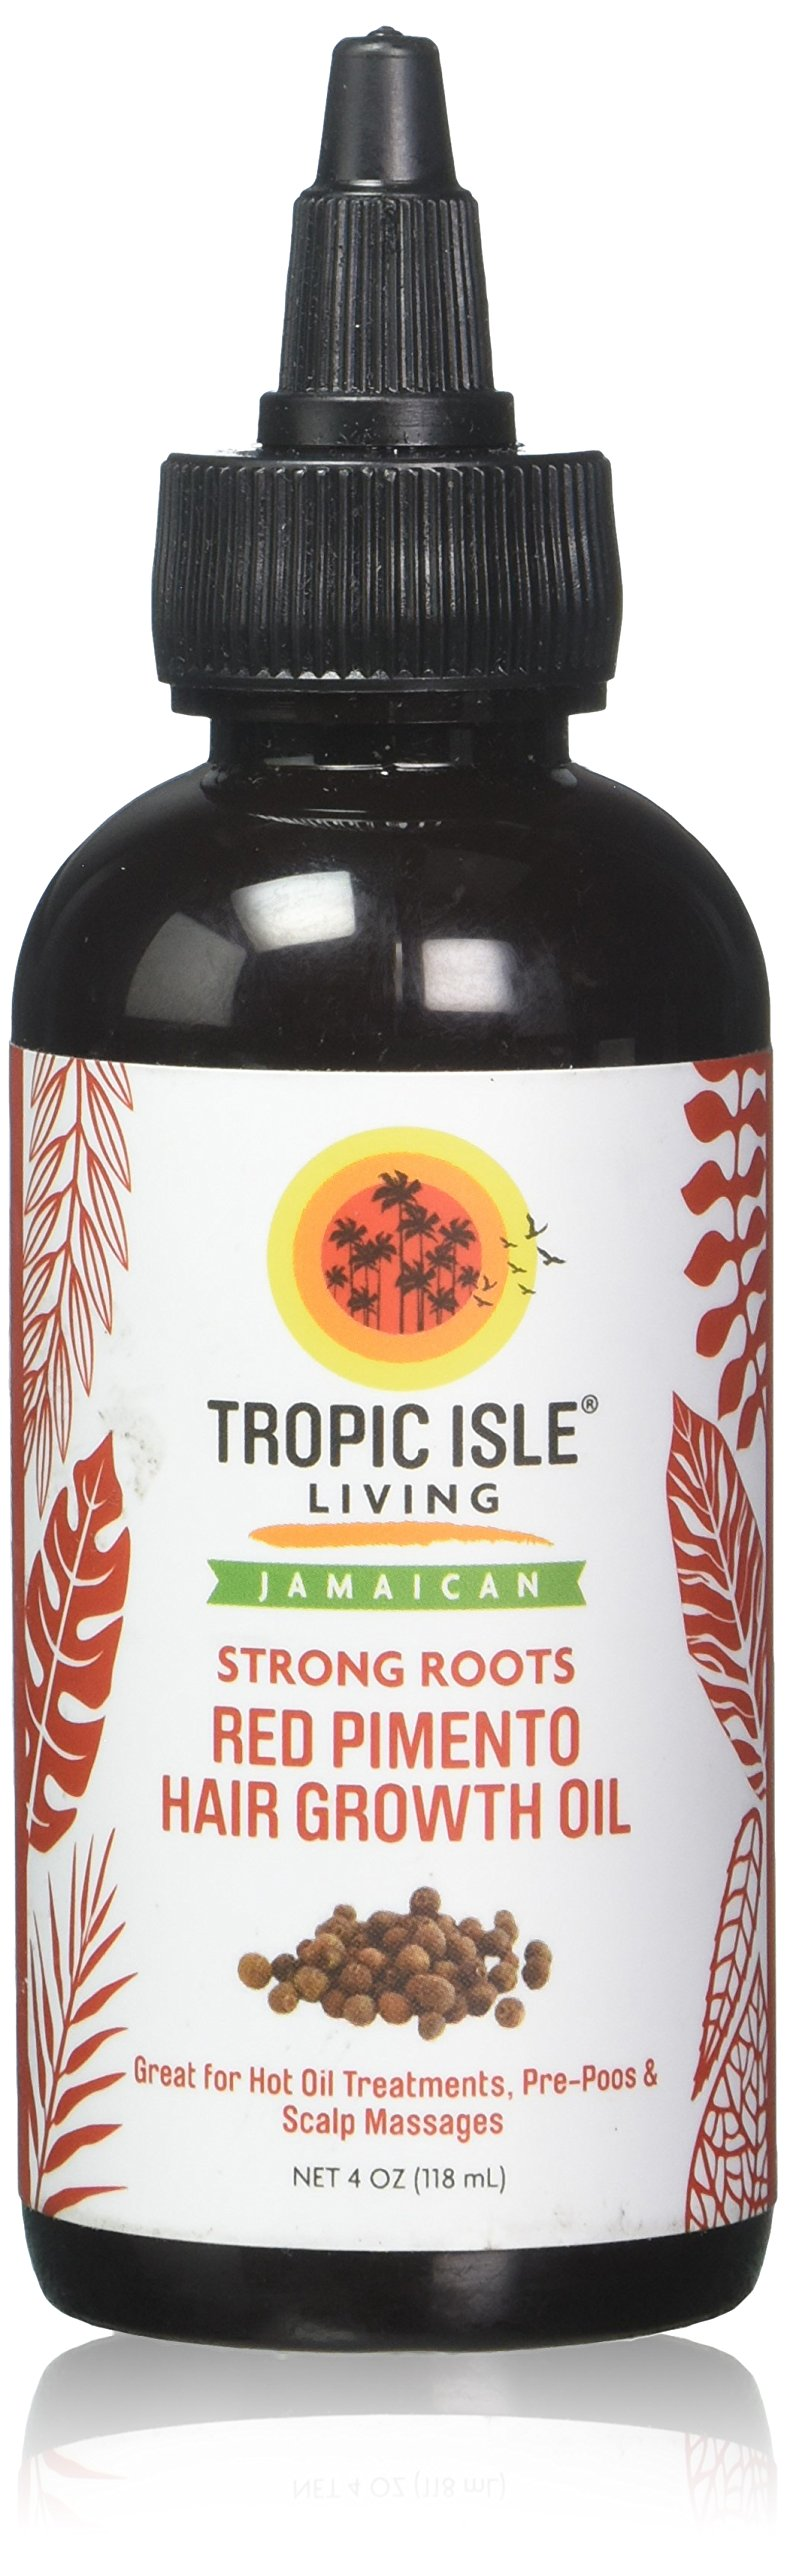 Tropic Isle Living- Strong Roots Red Pimento Hair Growth Oil-4oz